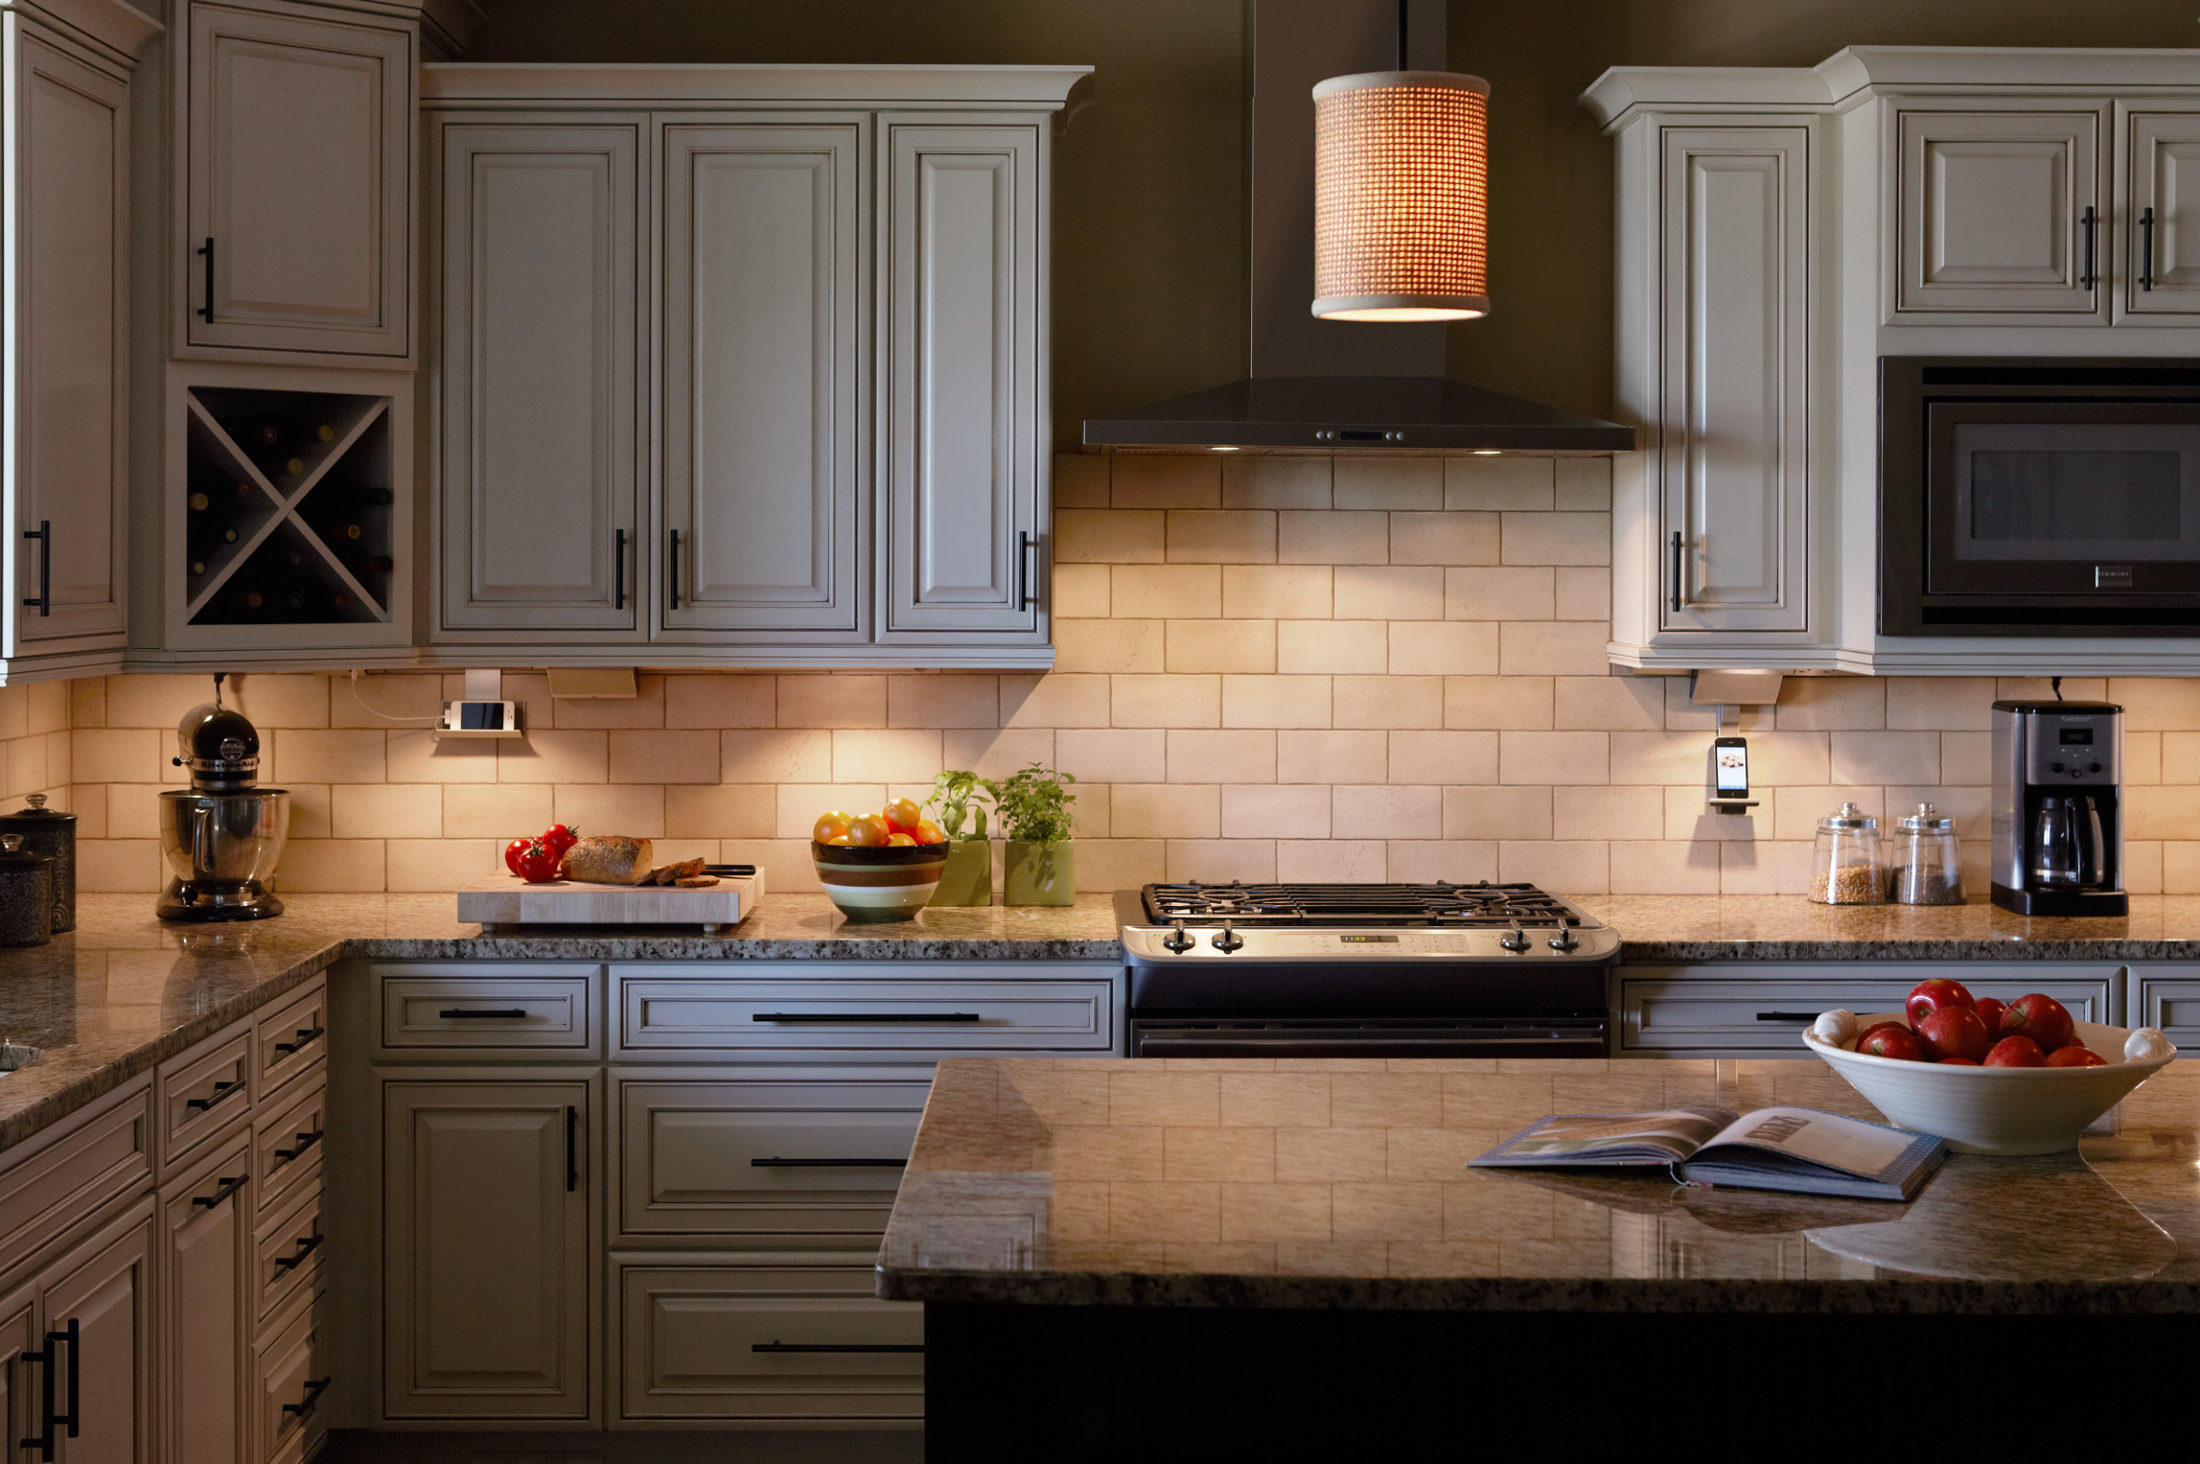 Led Lighting For Kitchen Led Kitchen Cabinet Lighting In Stock At Schillings